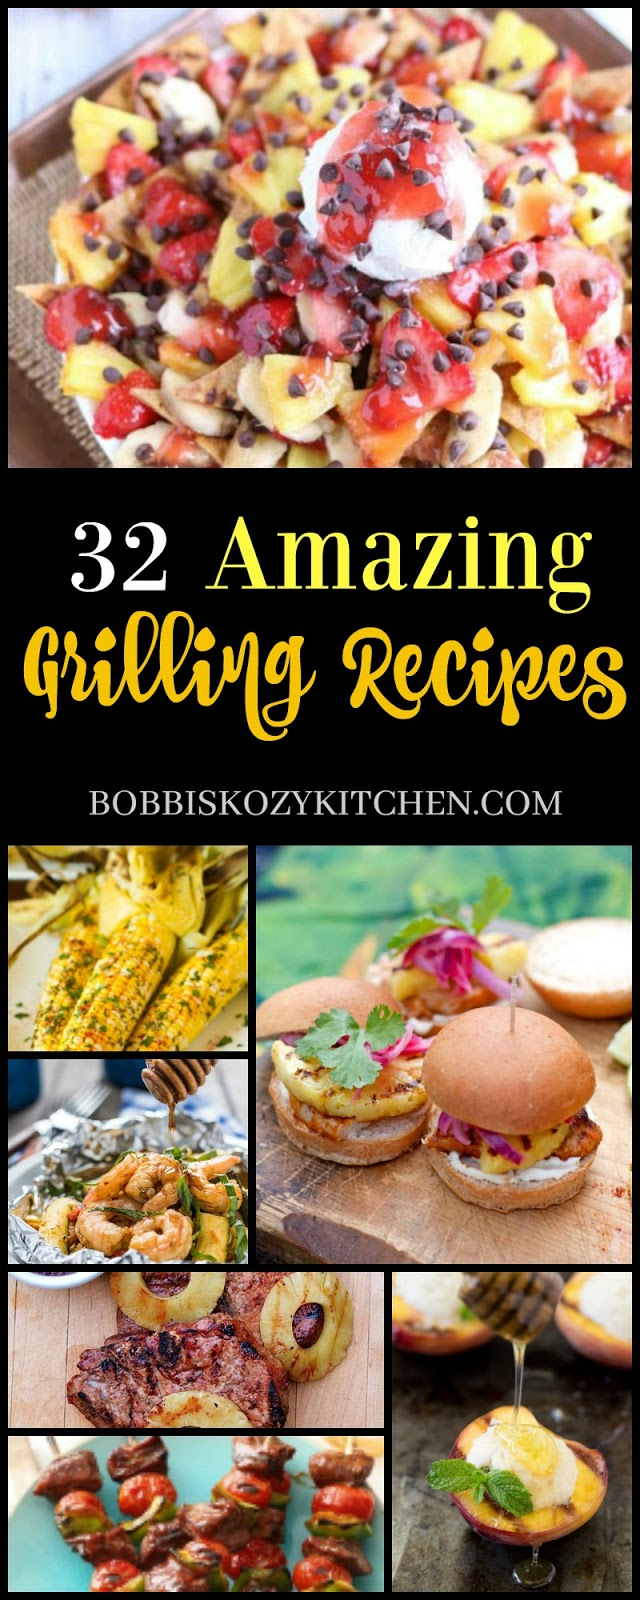 32 Amazing Fall Designed Nail Art That Will Make You Stunned: 32 Amazing Grilling Recipes